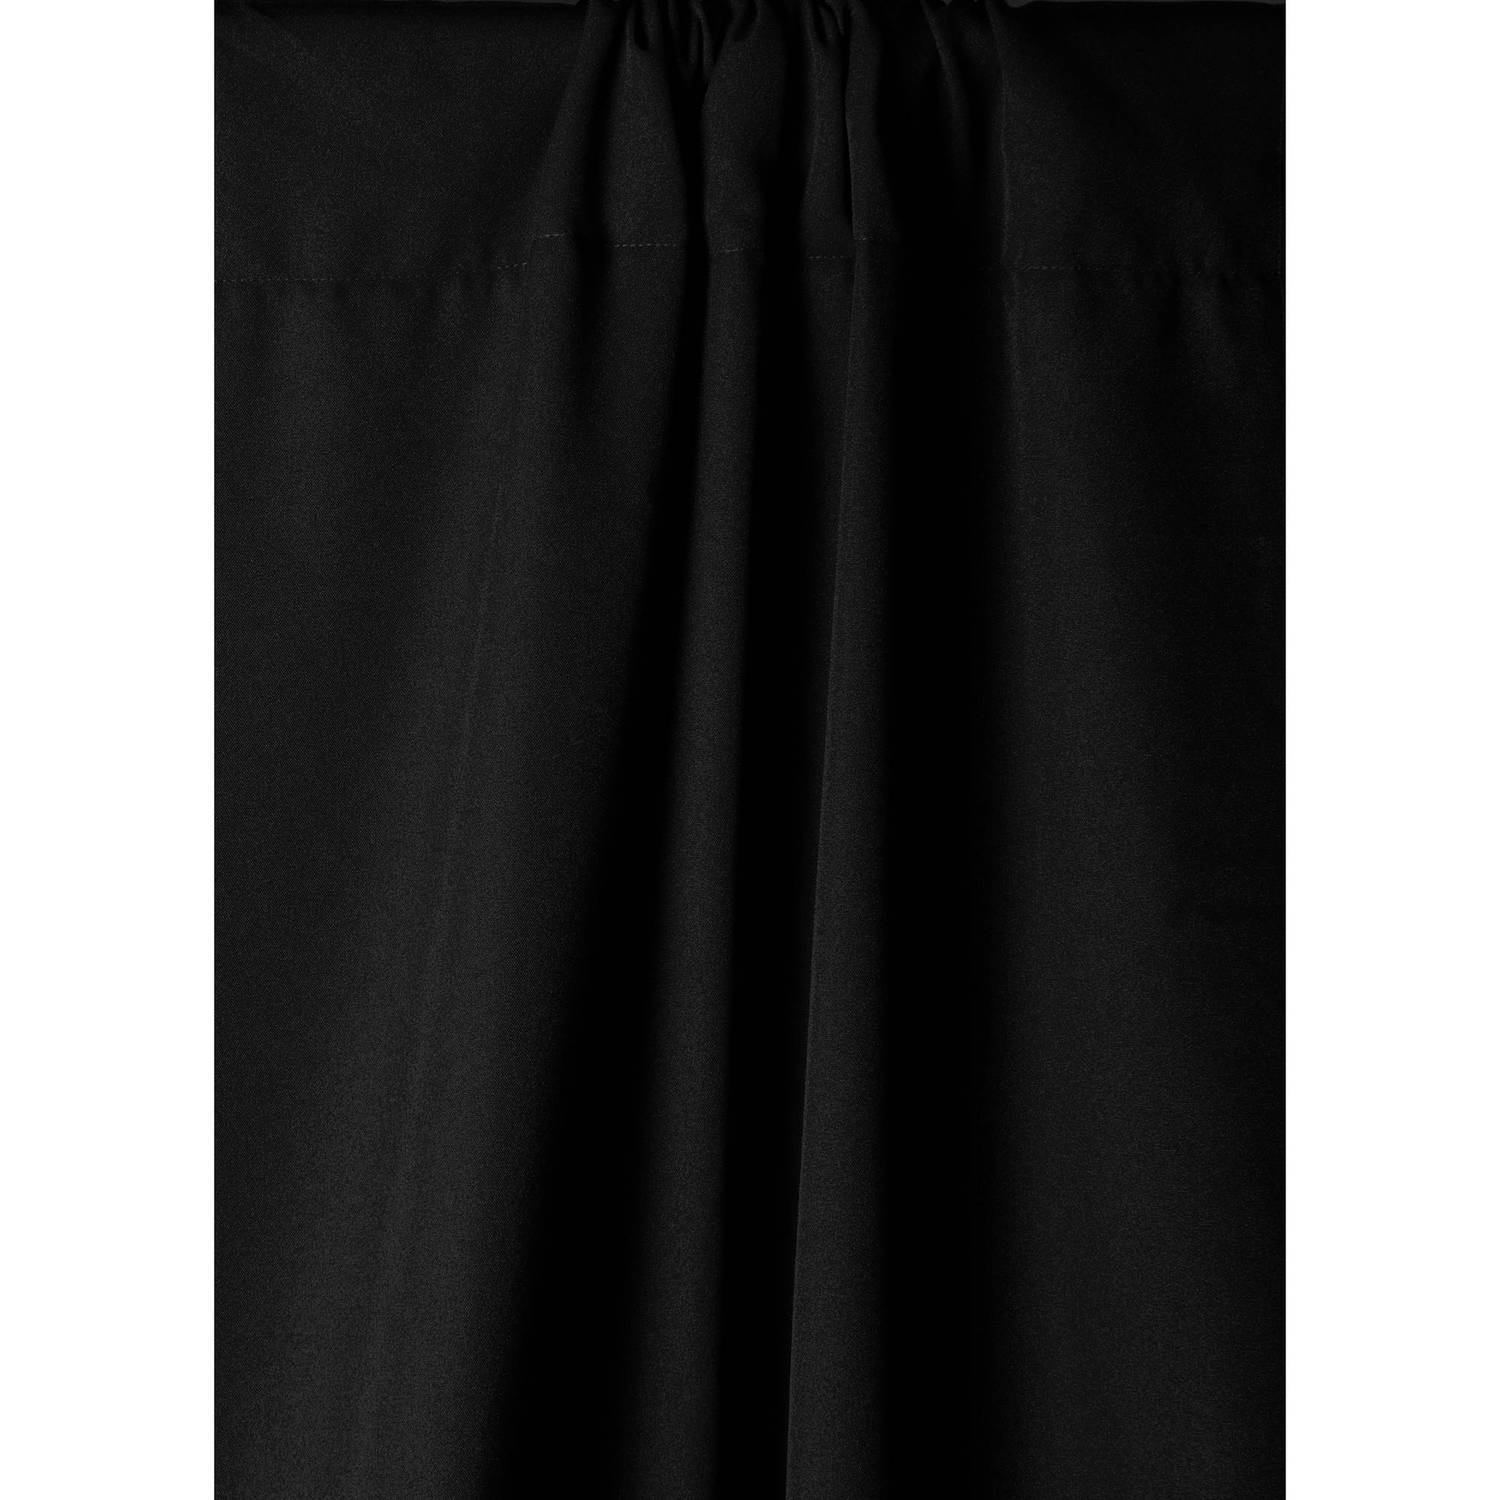 Savage Solid Eco Black 1.52m x 2.74m Wrinkle Resistant Polyester Background